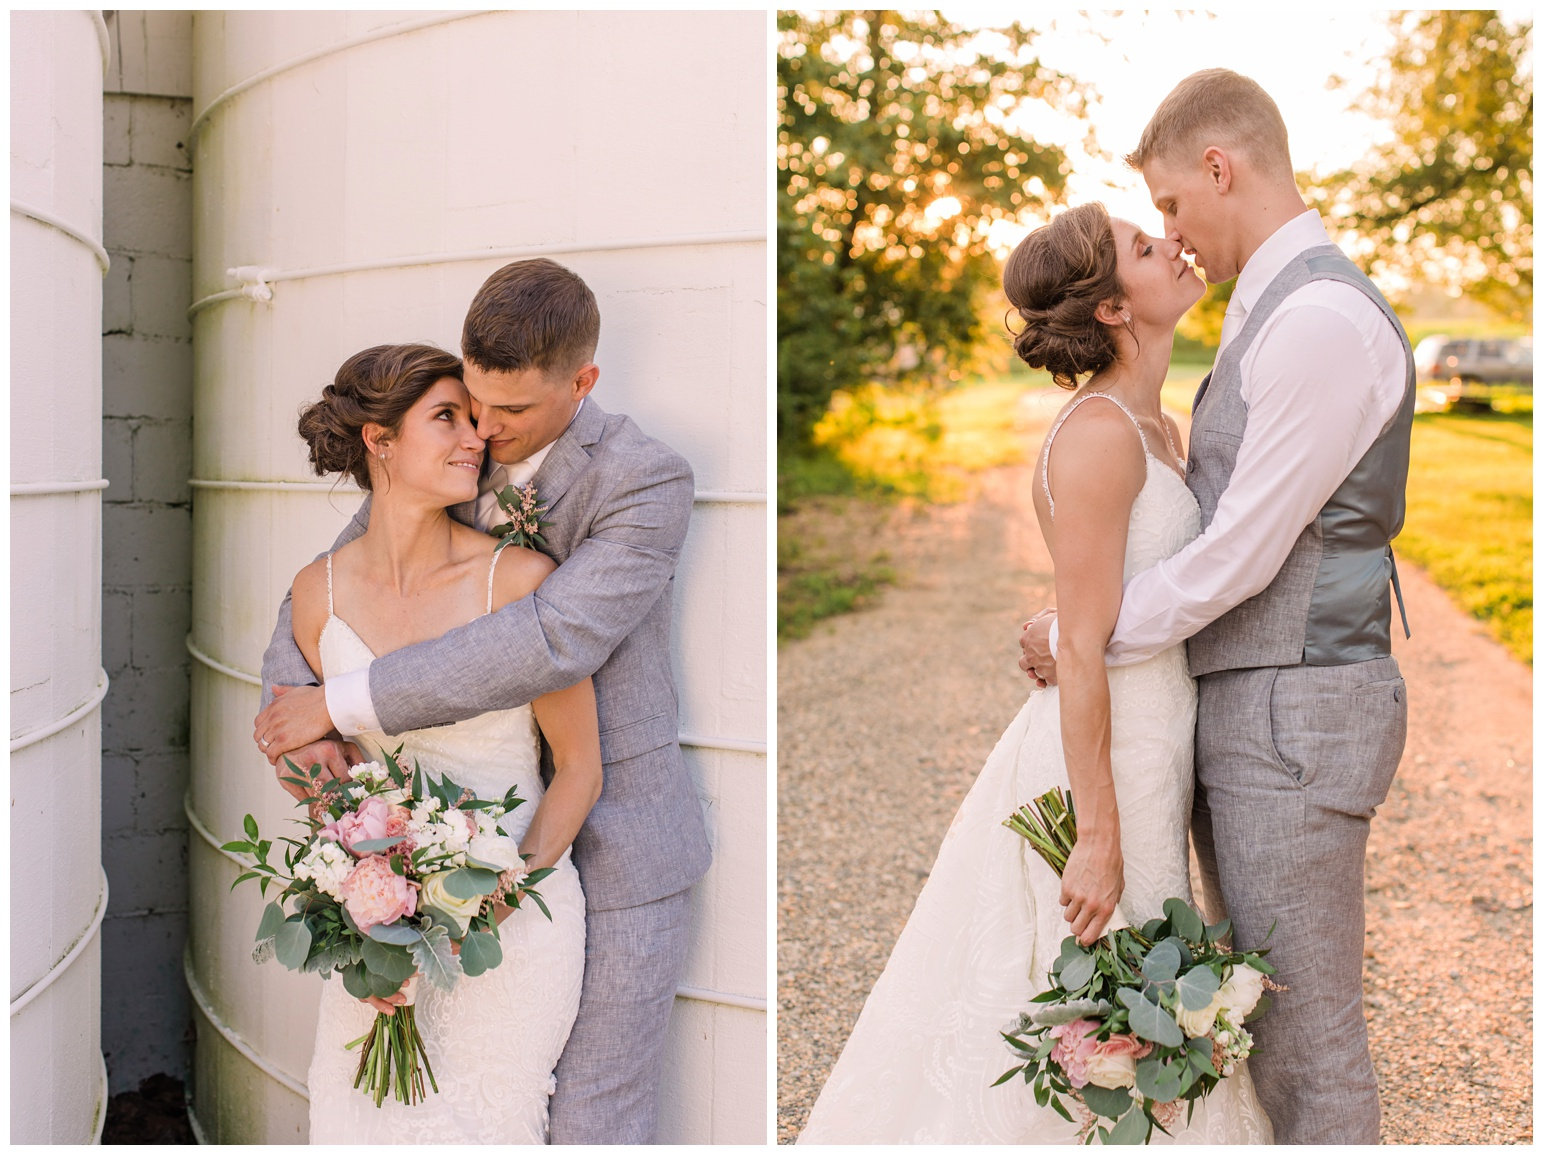 worsell manor wedding in the summer - warwick md - now featured on My Eastern Shore Wedding - coastal - sea - nautical - eastern shore - inspired wedding ideas and inspo - photo of bride and groom in front of silo - formal portrait photo outdoors